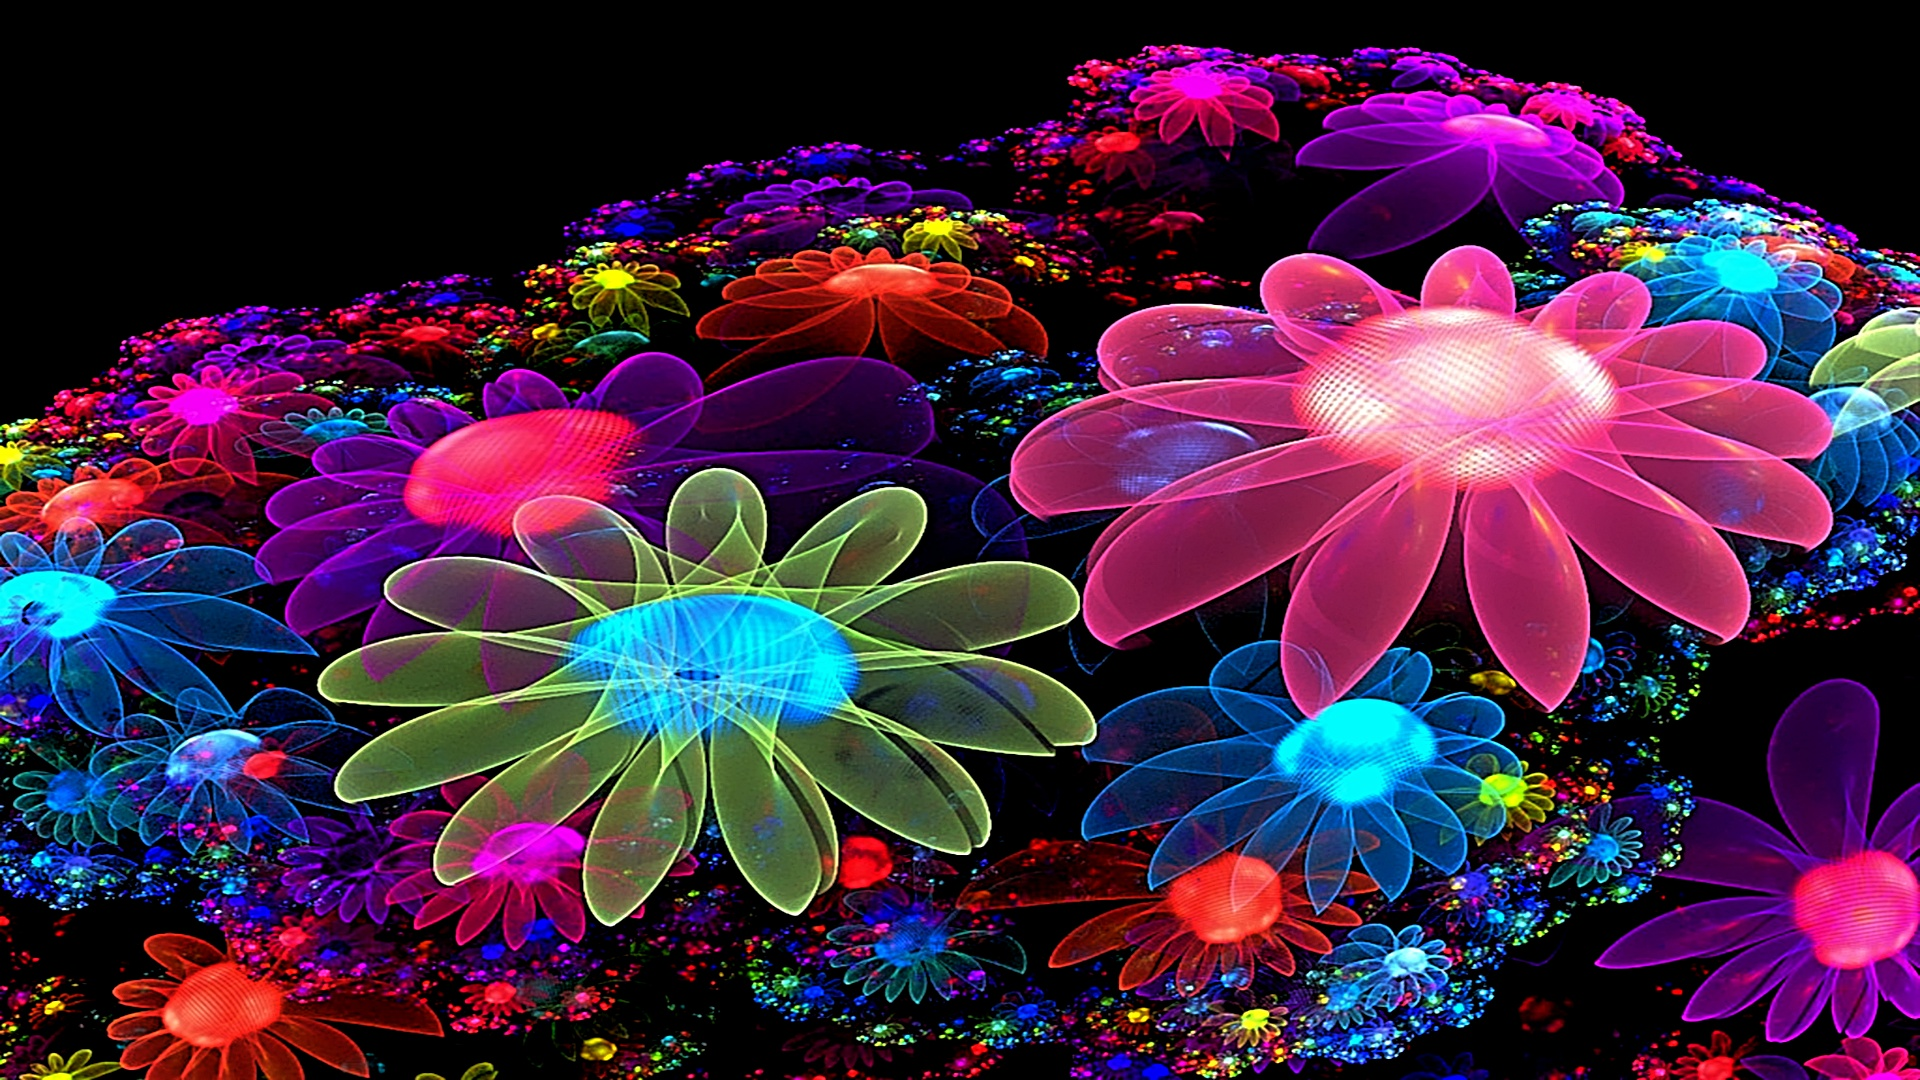 Neon Flower Digital Art 1920x1080 1920x1080